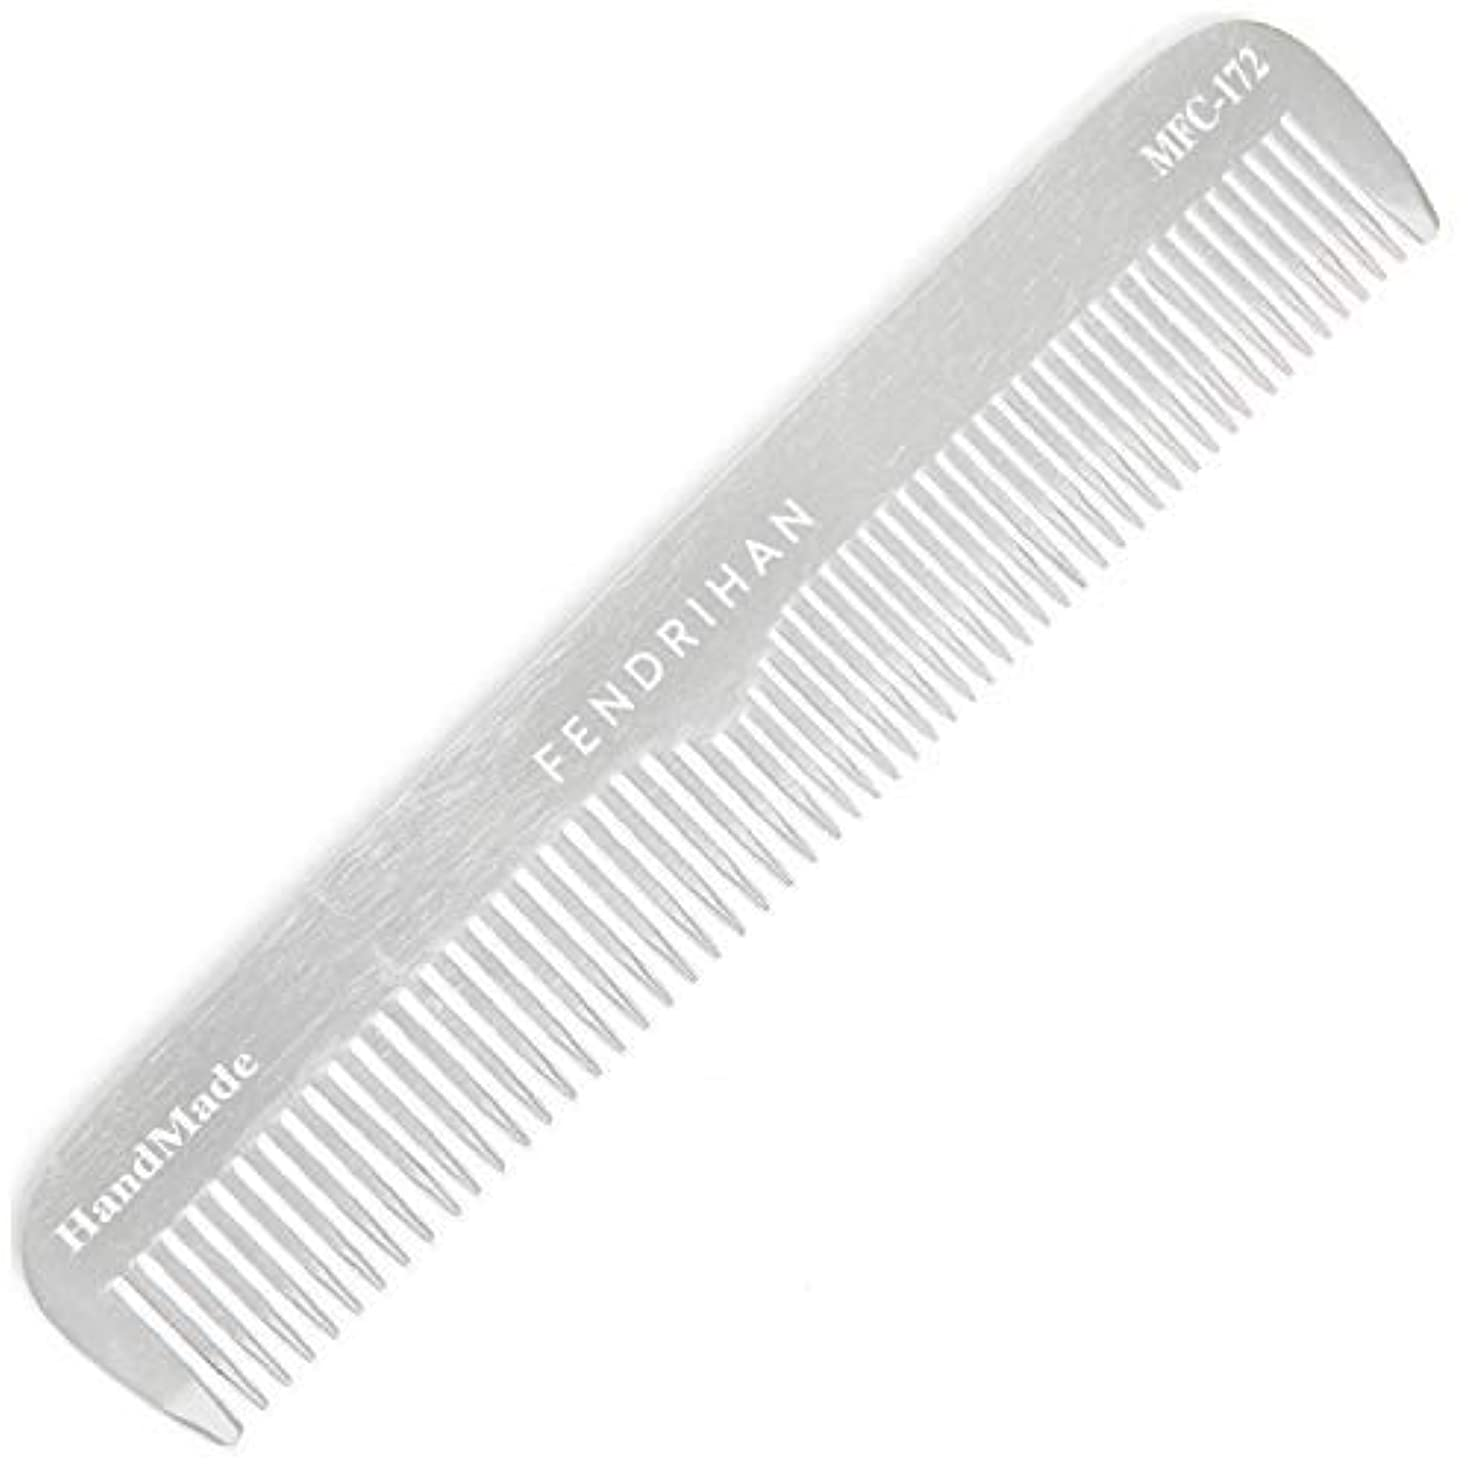 Fendrihan Sturdy Metal Fine Tooth Barber Grooming Comb (6.7 Inches) [並行輸入品]